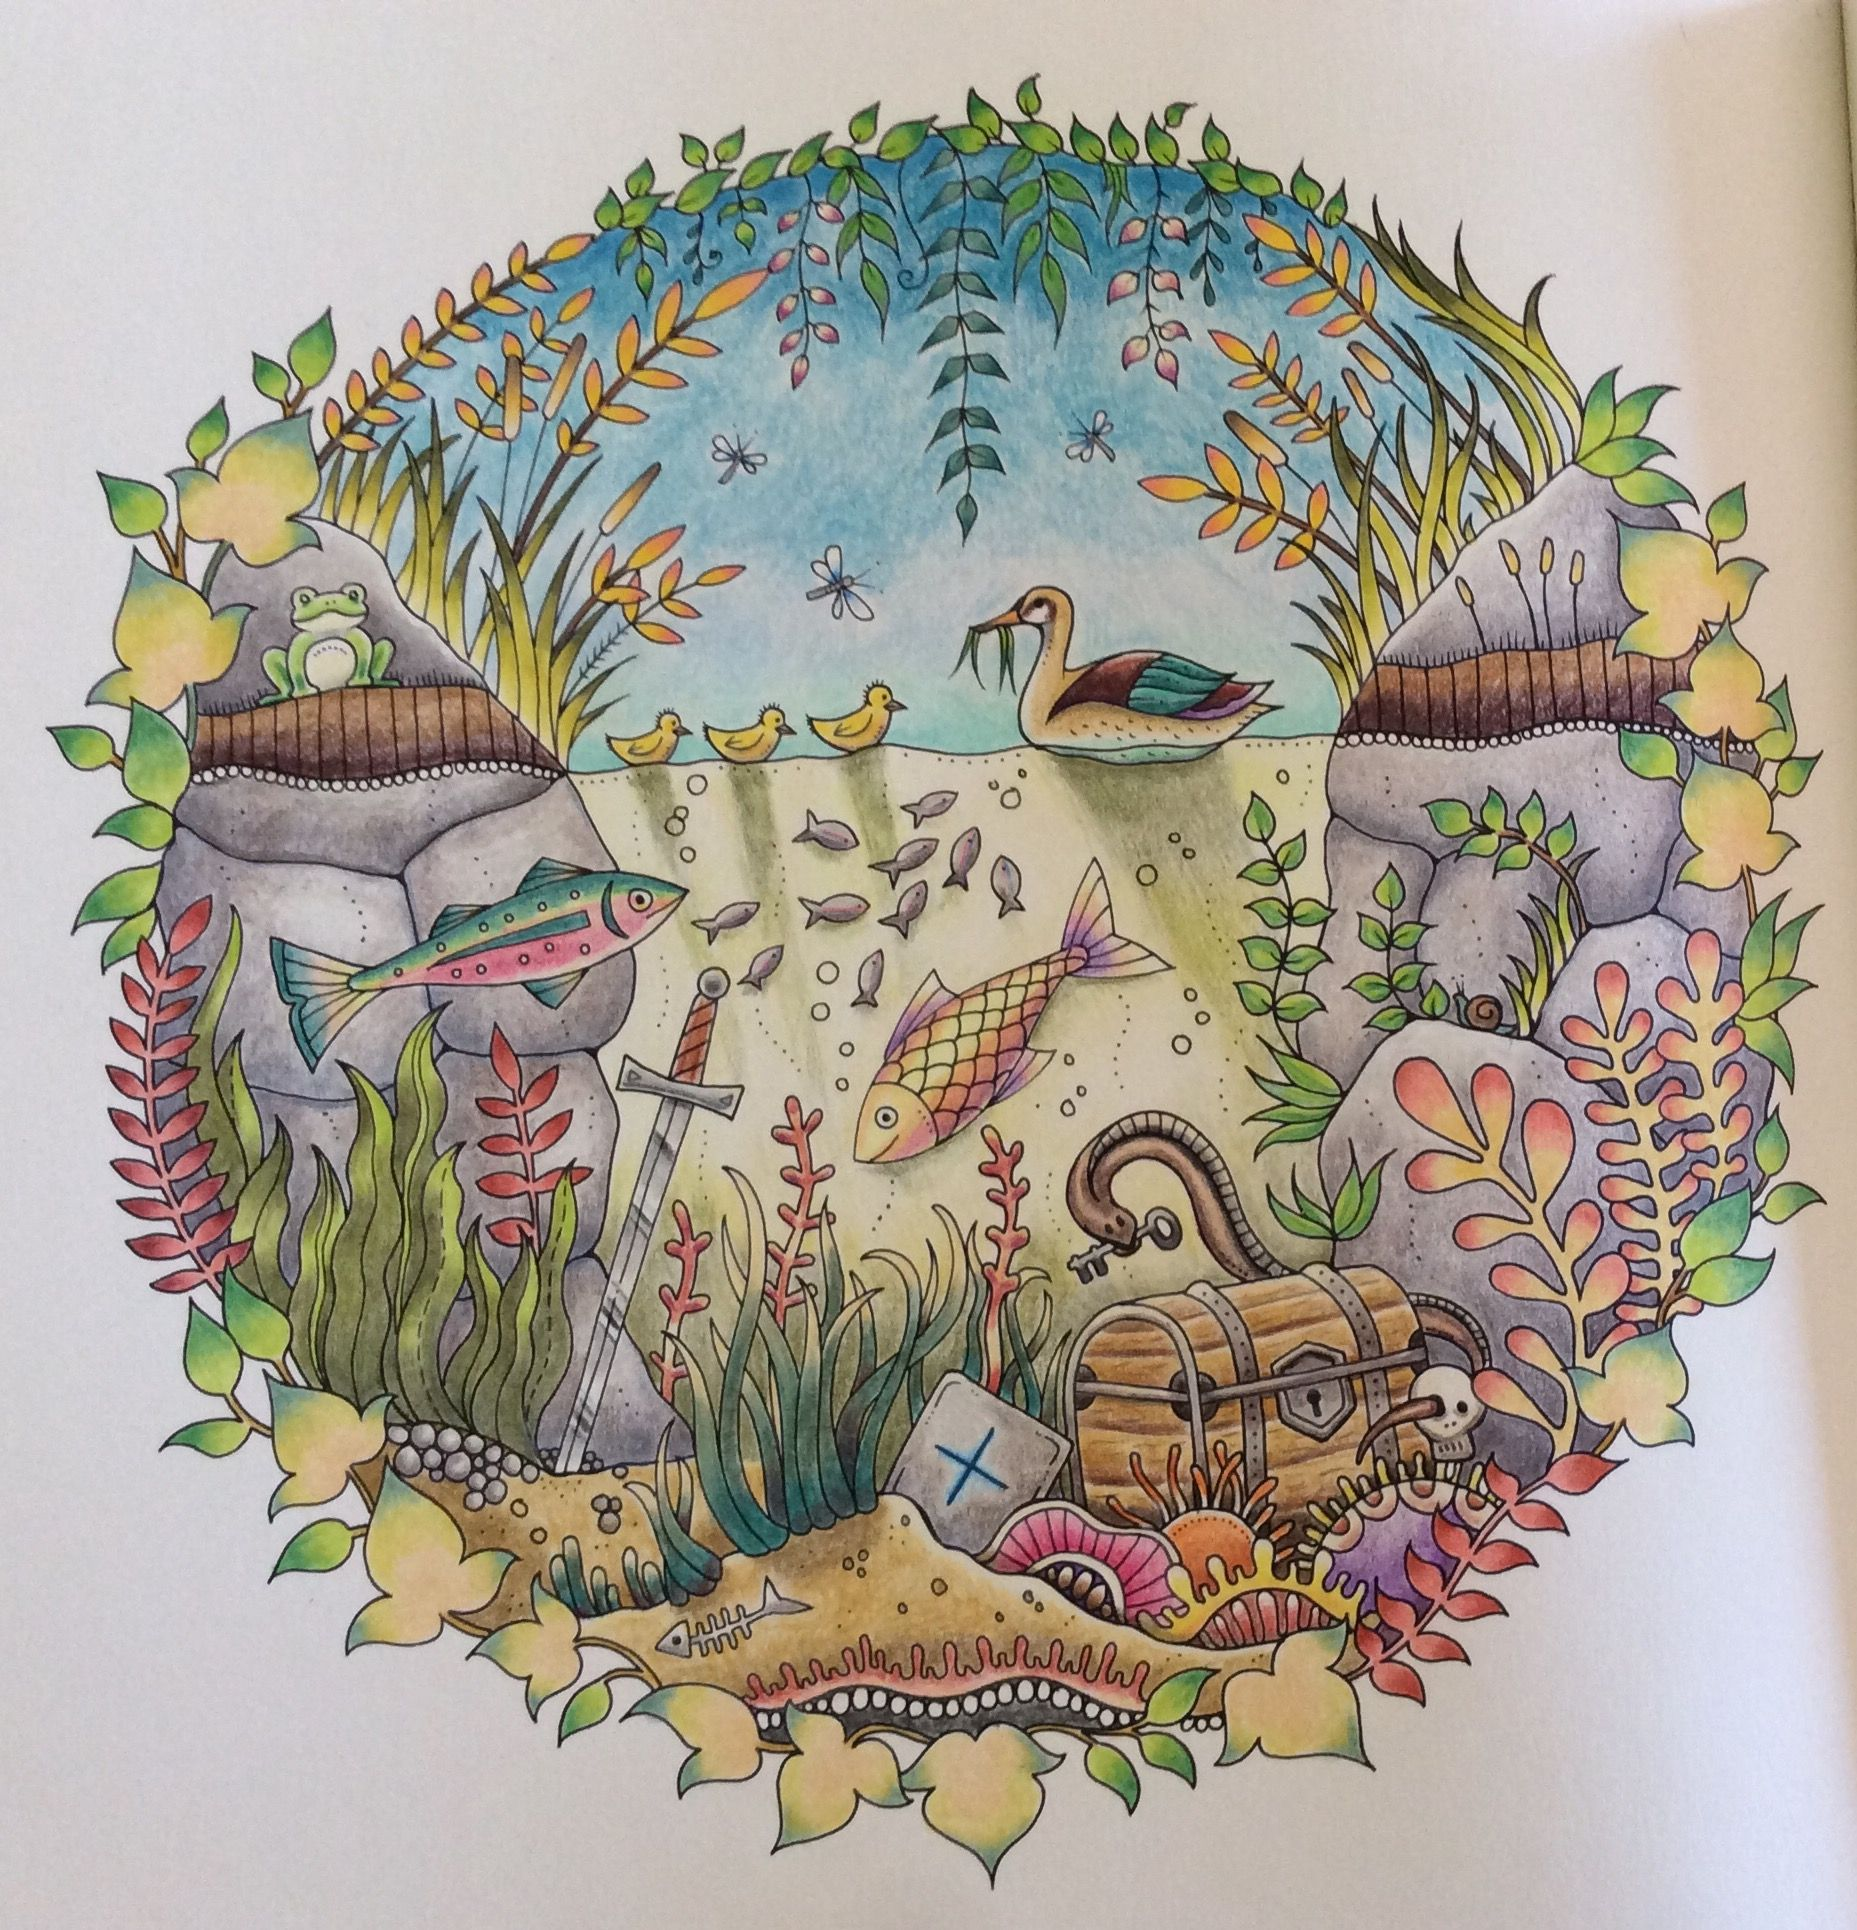 Enchanted Forest Coloring Book By Johanna Basford: The Duck